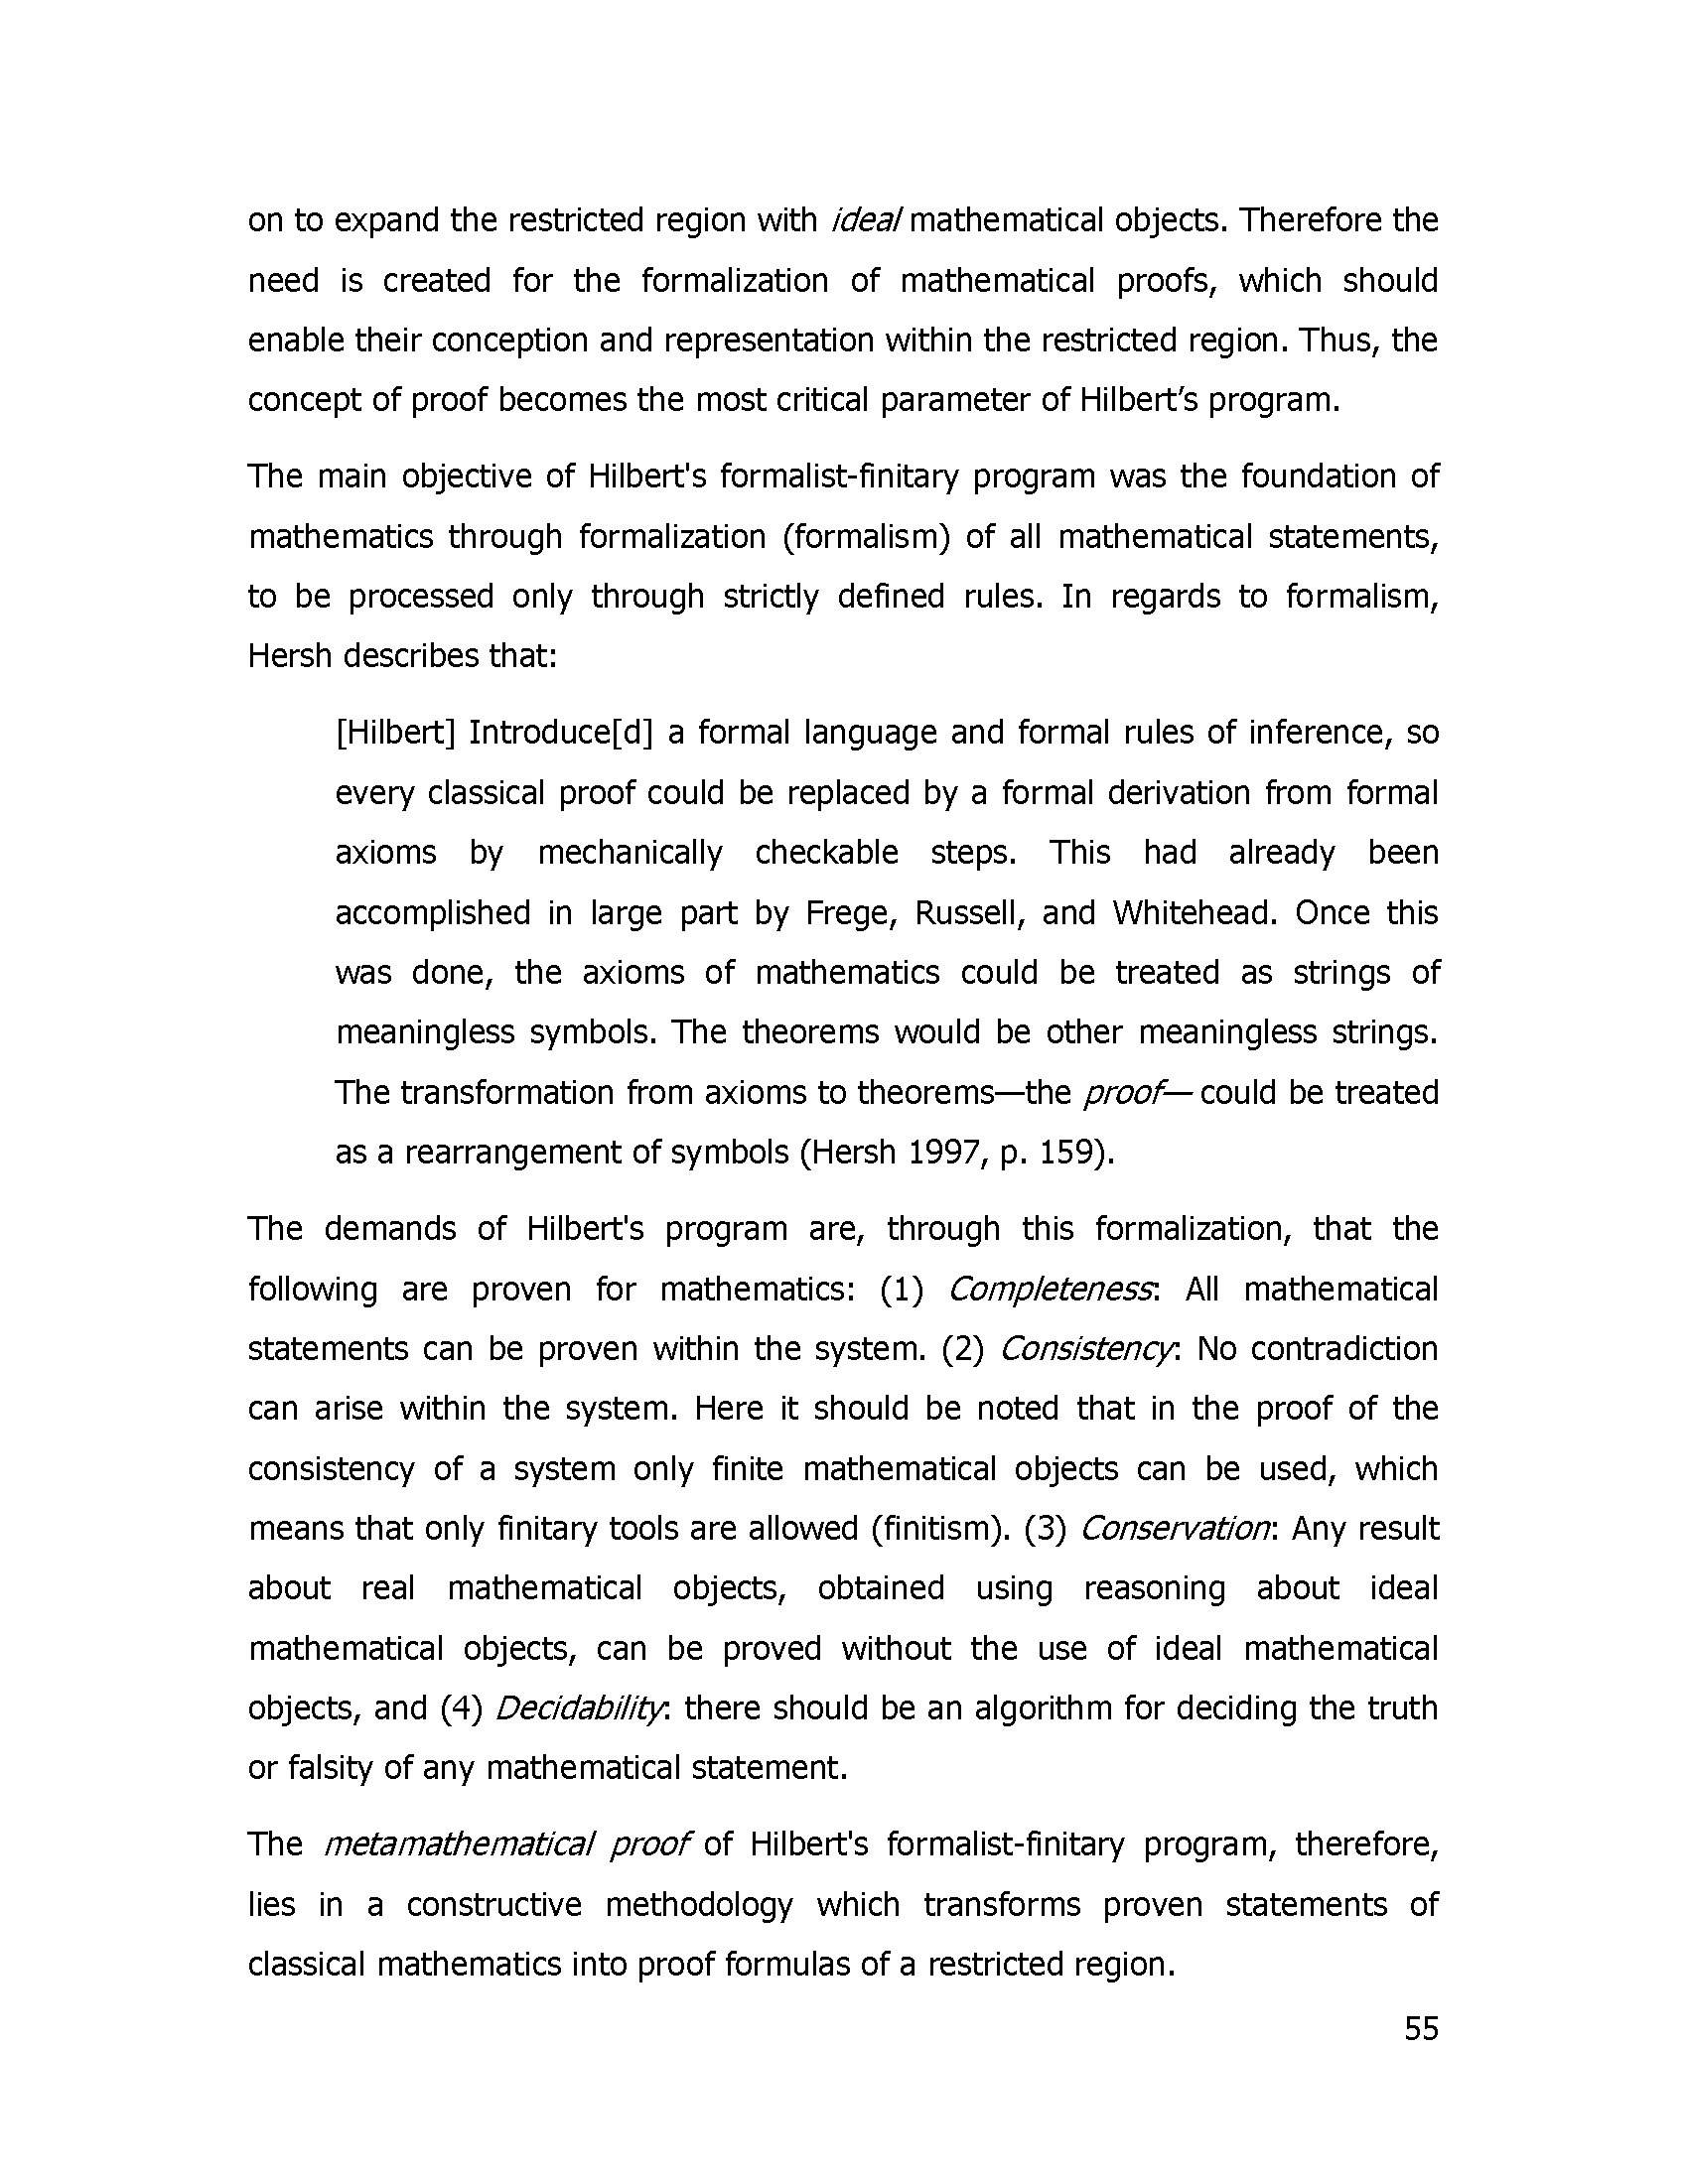 Timpilis, Dimitris (2011) Social and Cultural Approaches to the New Crisis in the Foundations of Mathematics, L. E. J. Brouwer's Free Will versus Leibniz's Dream_Page_56.jpg